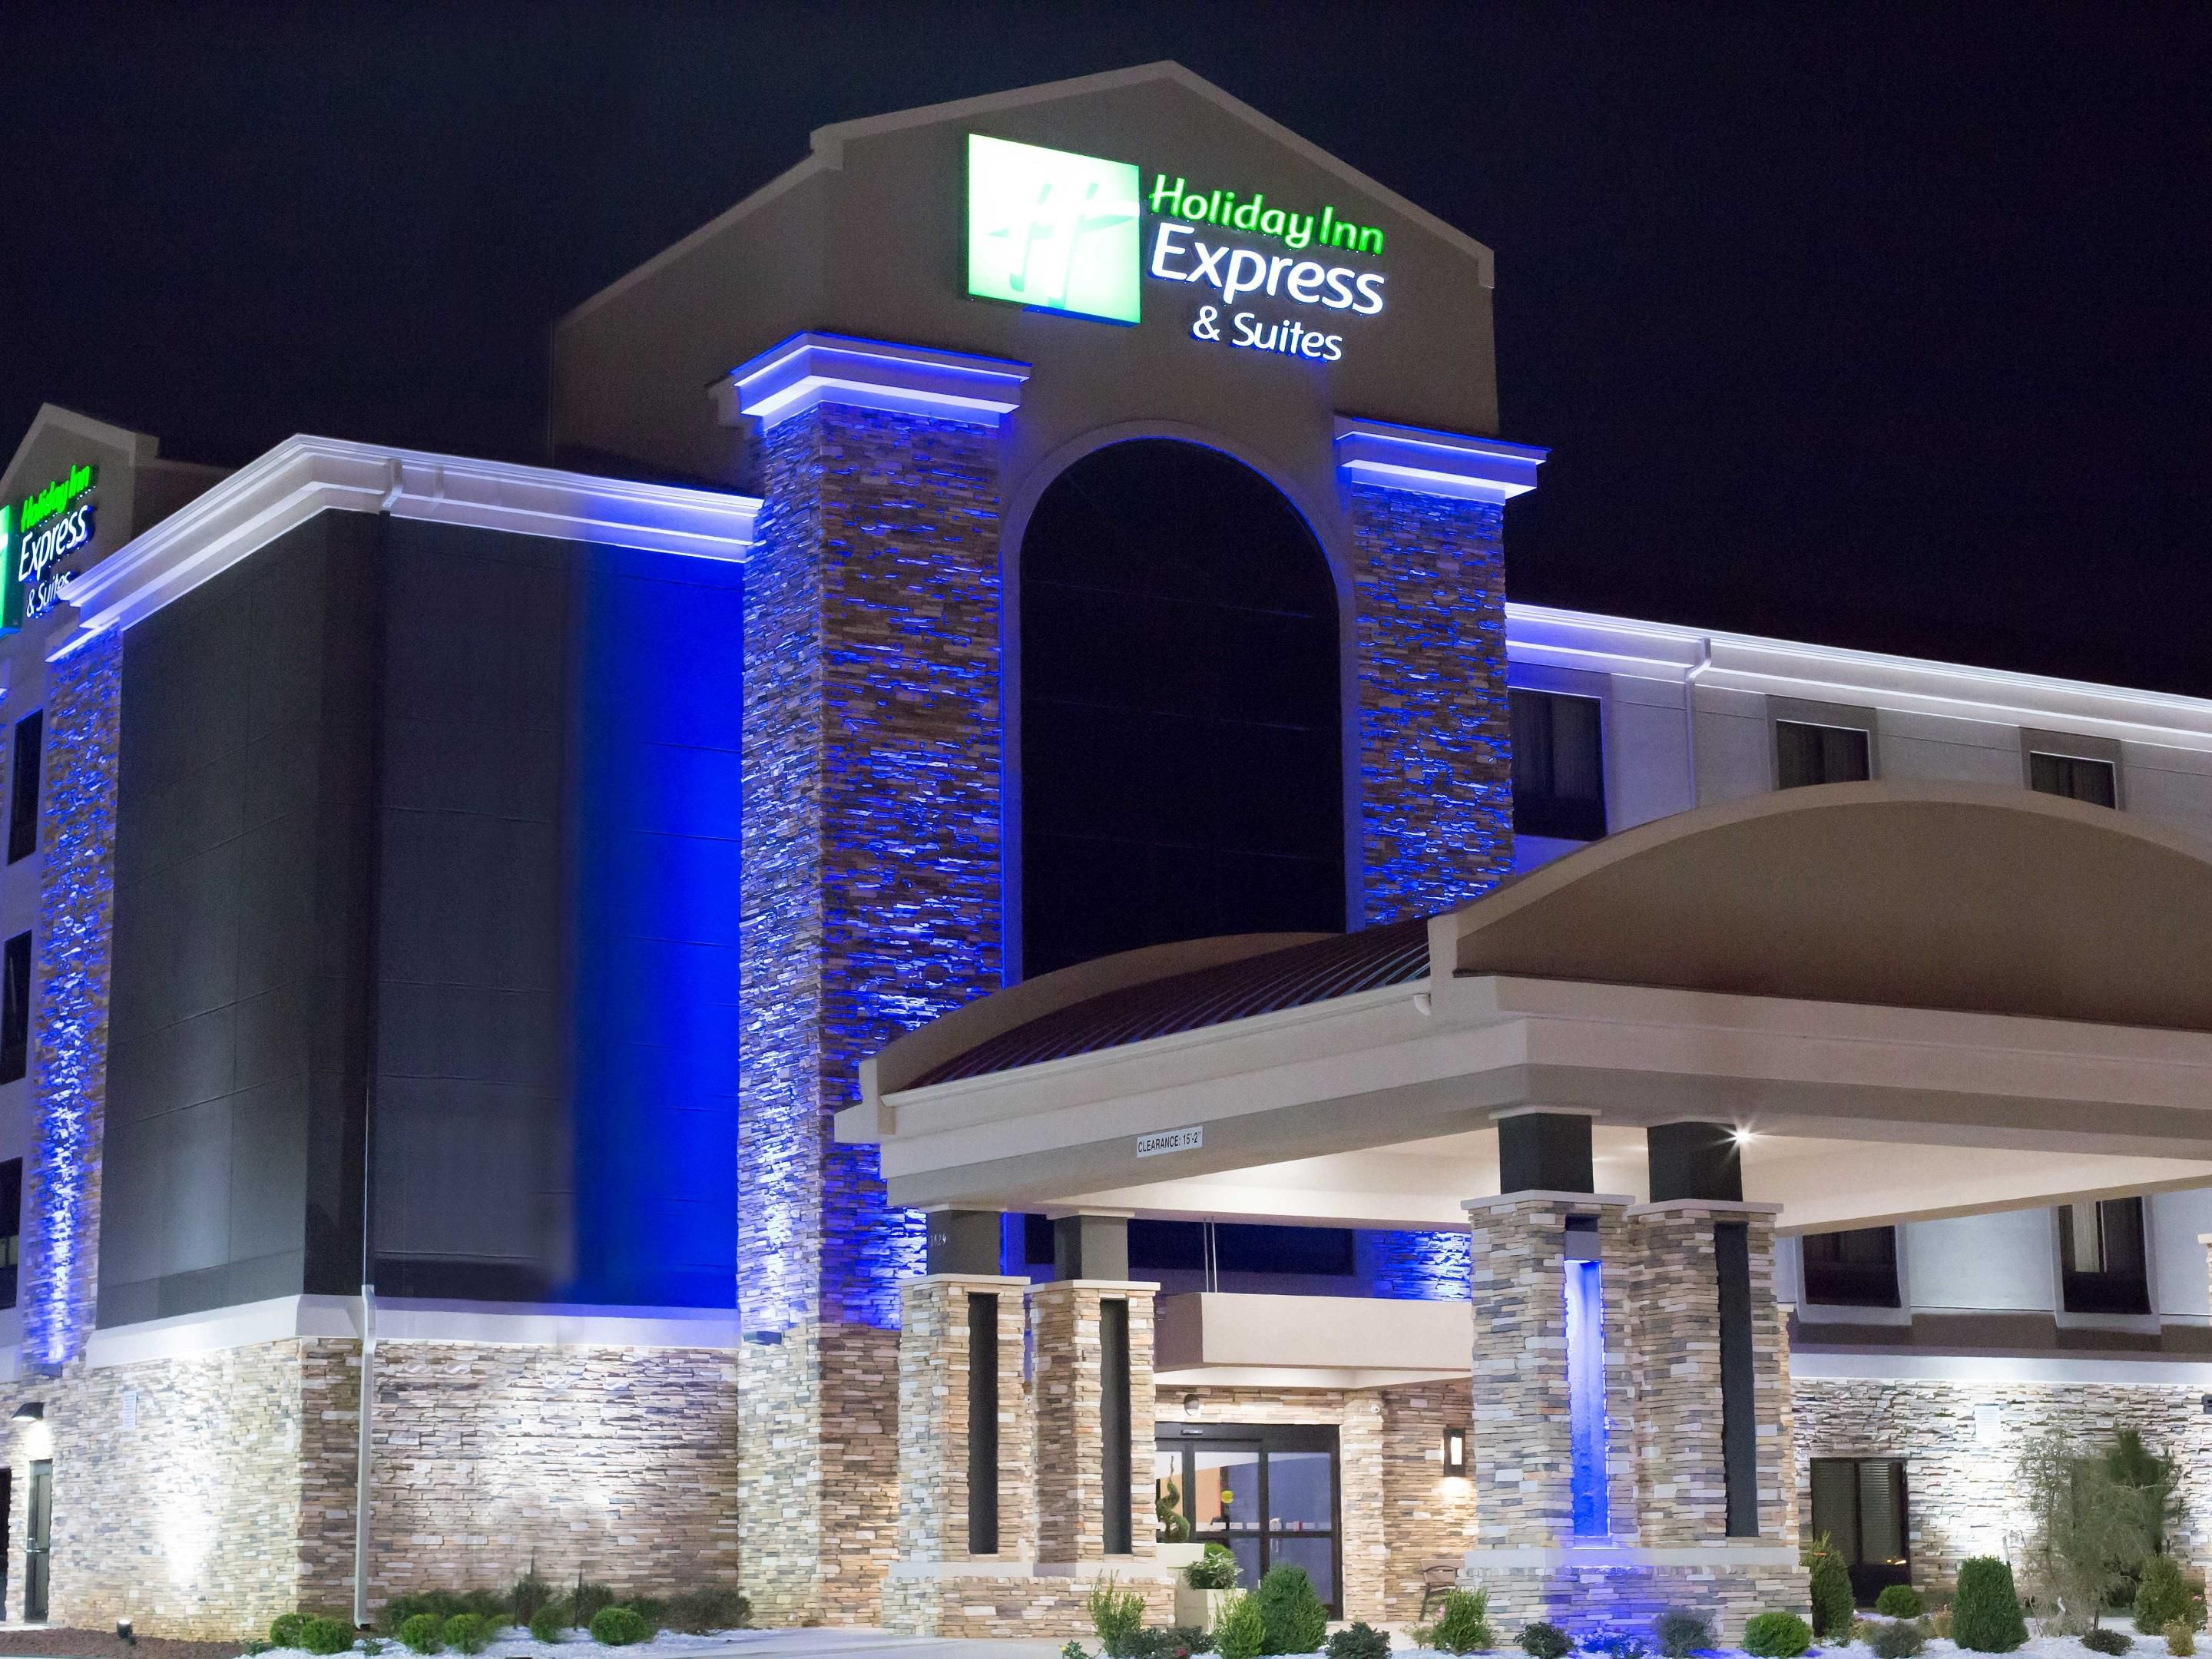 Exterior Night: Holiday Inn Express & Suites Oklahoma City Hotel